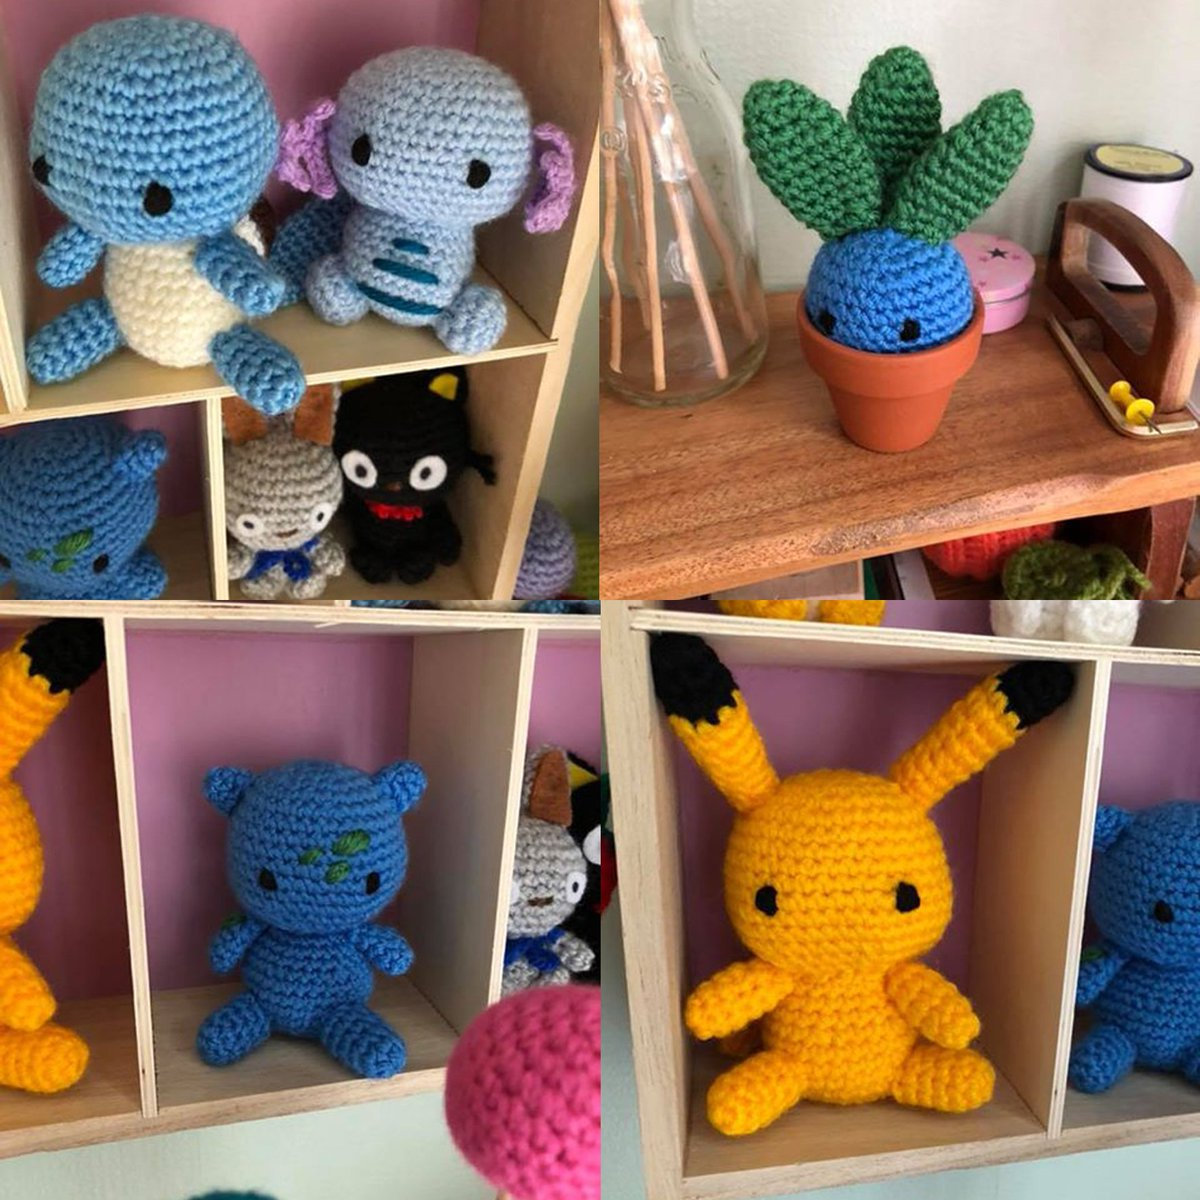 Crocheted Plush Pokémon Characters With Insane Detail | 1200x1200